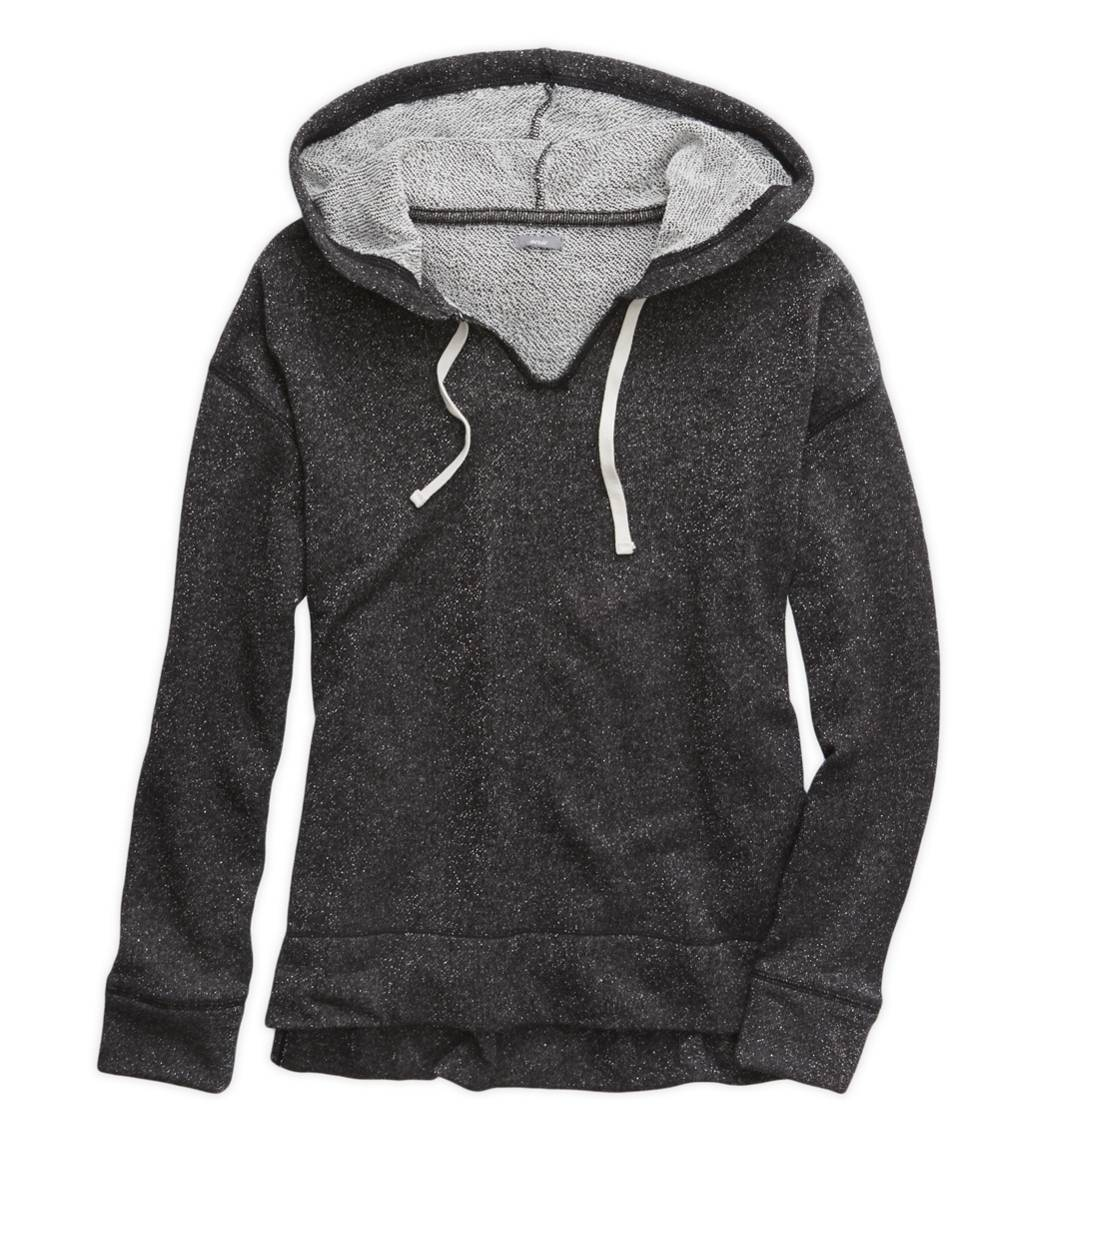 Charcoal Heather Grey Aerie Sparkle Hooded Sweatshirt